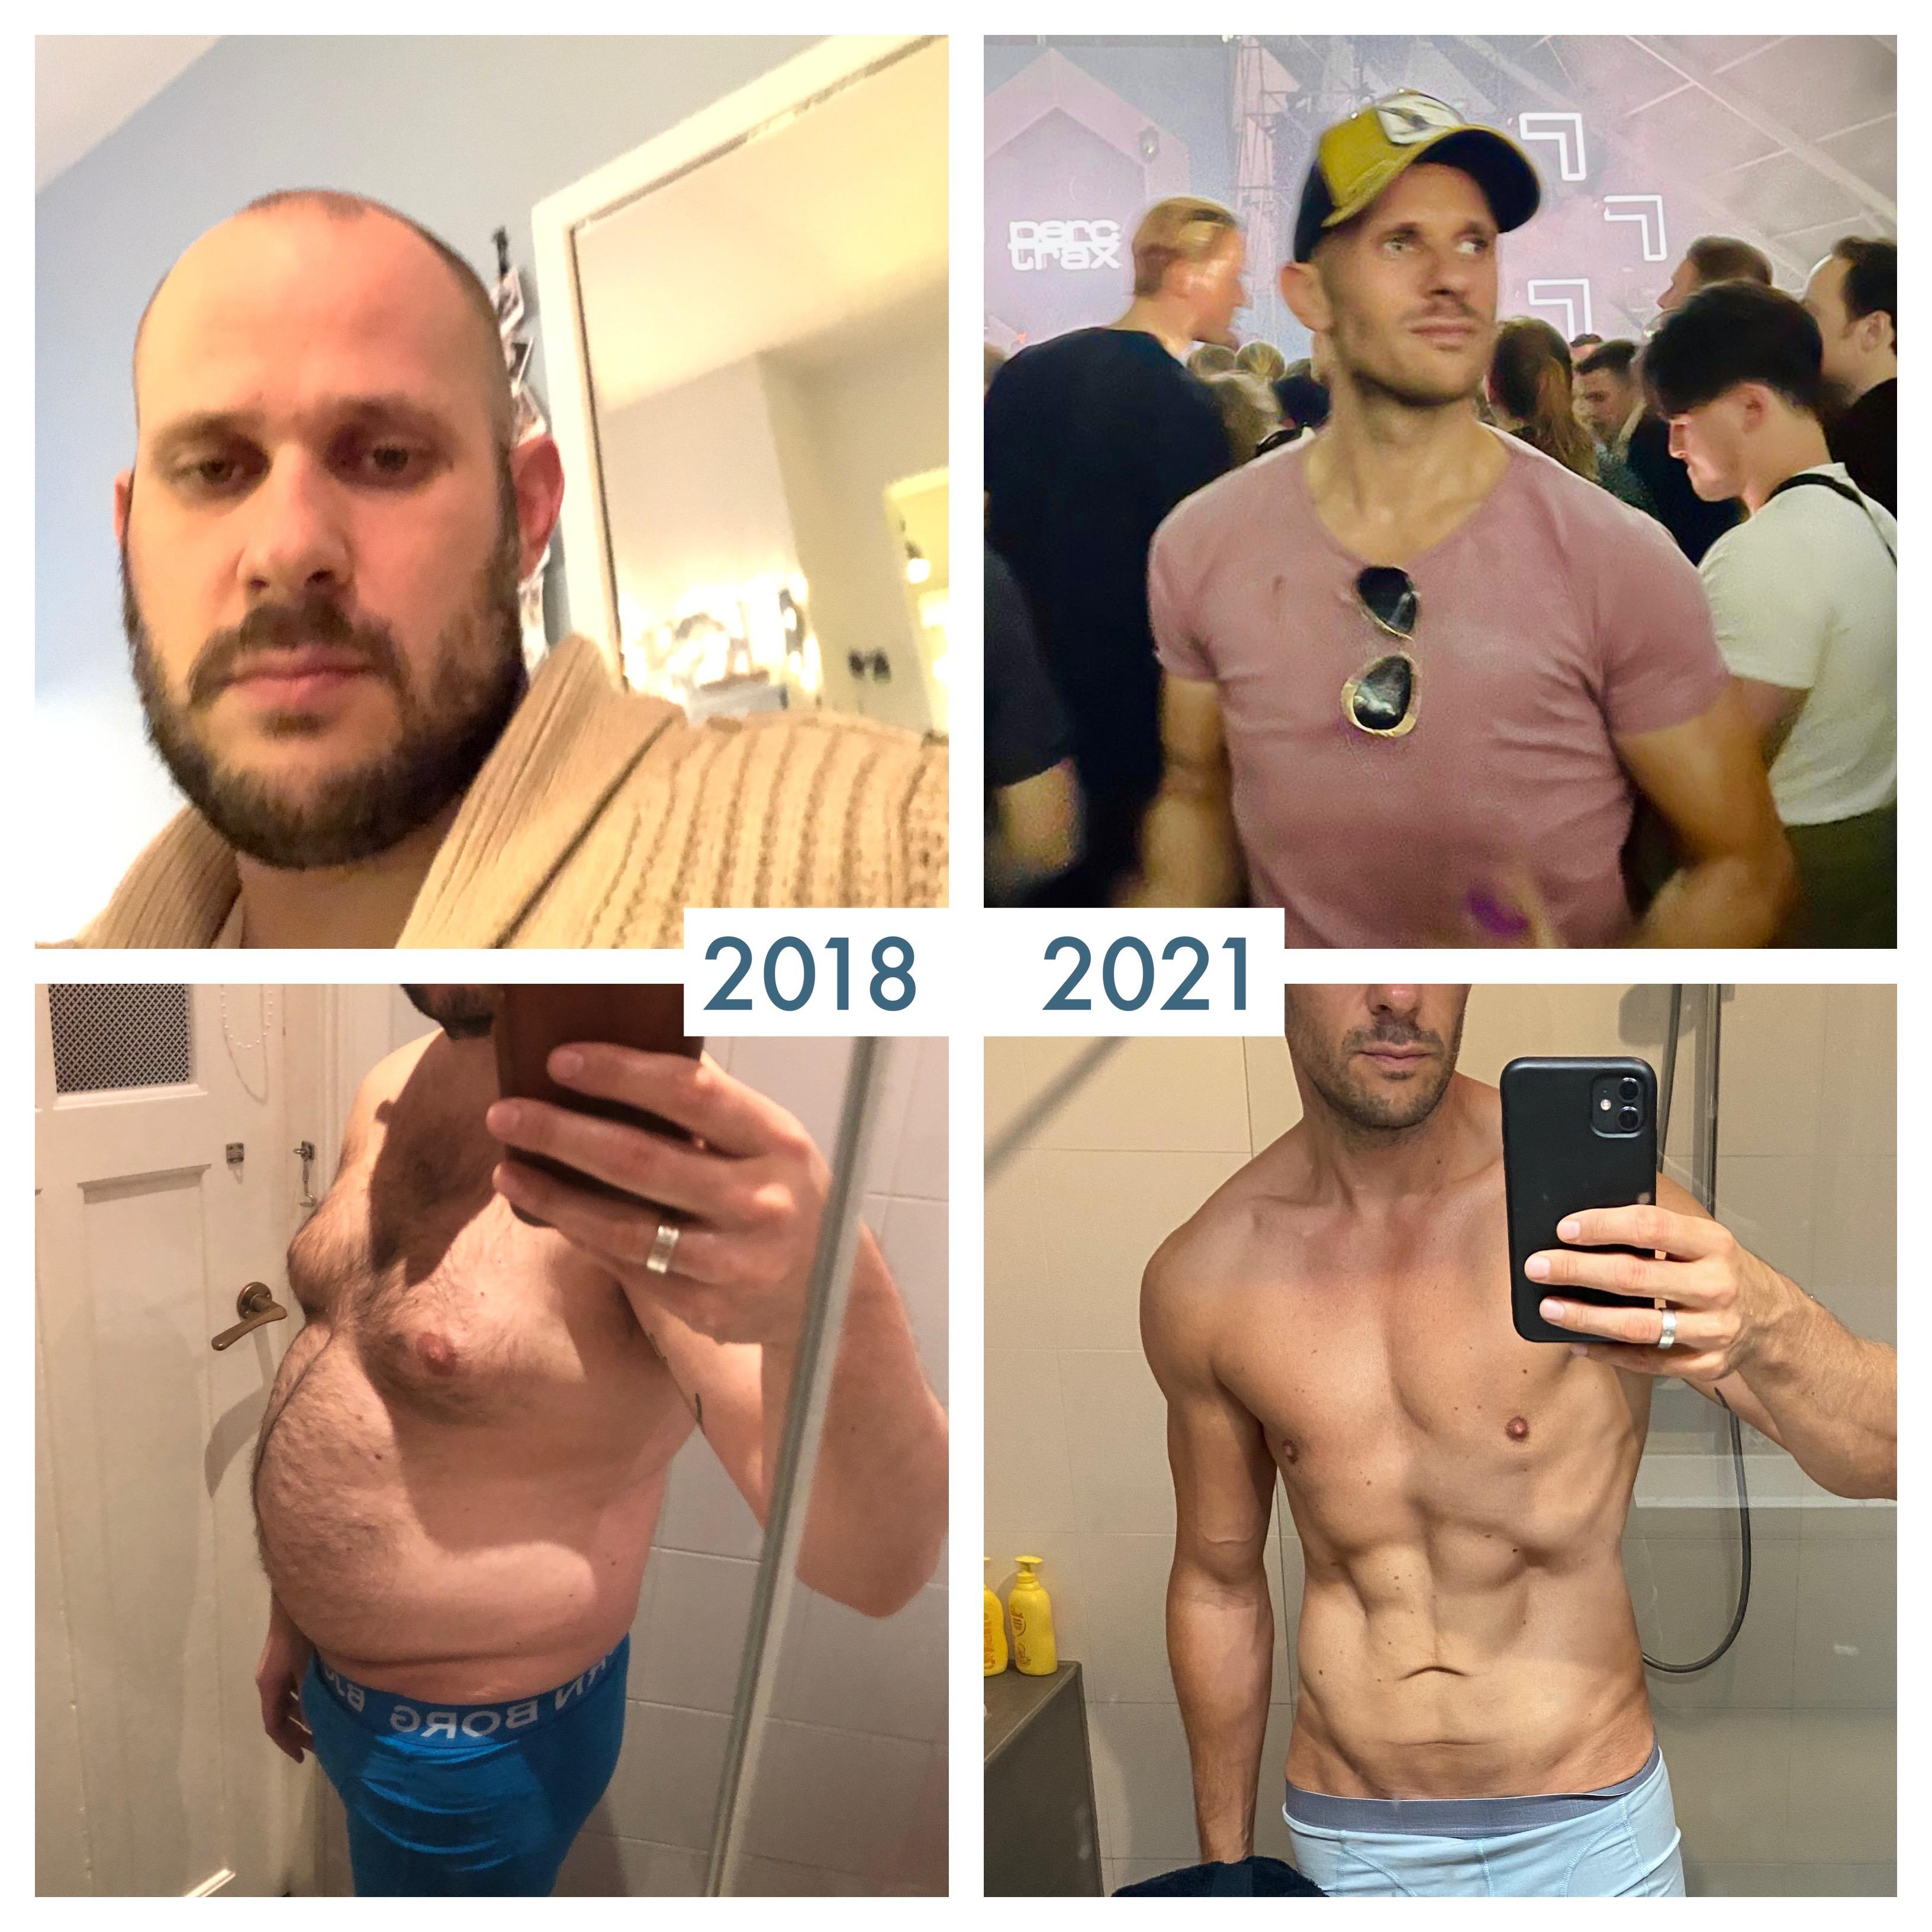 5 foot 10 Male 99 lbs Fat Loss Before and After 240 lbs to 141 lbs